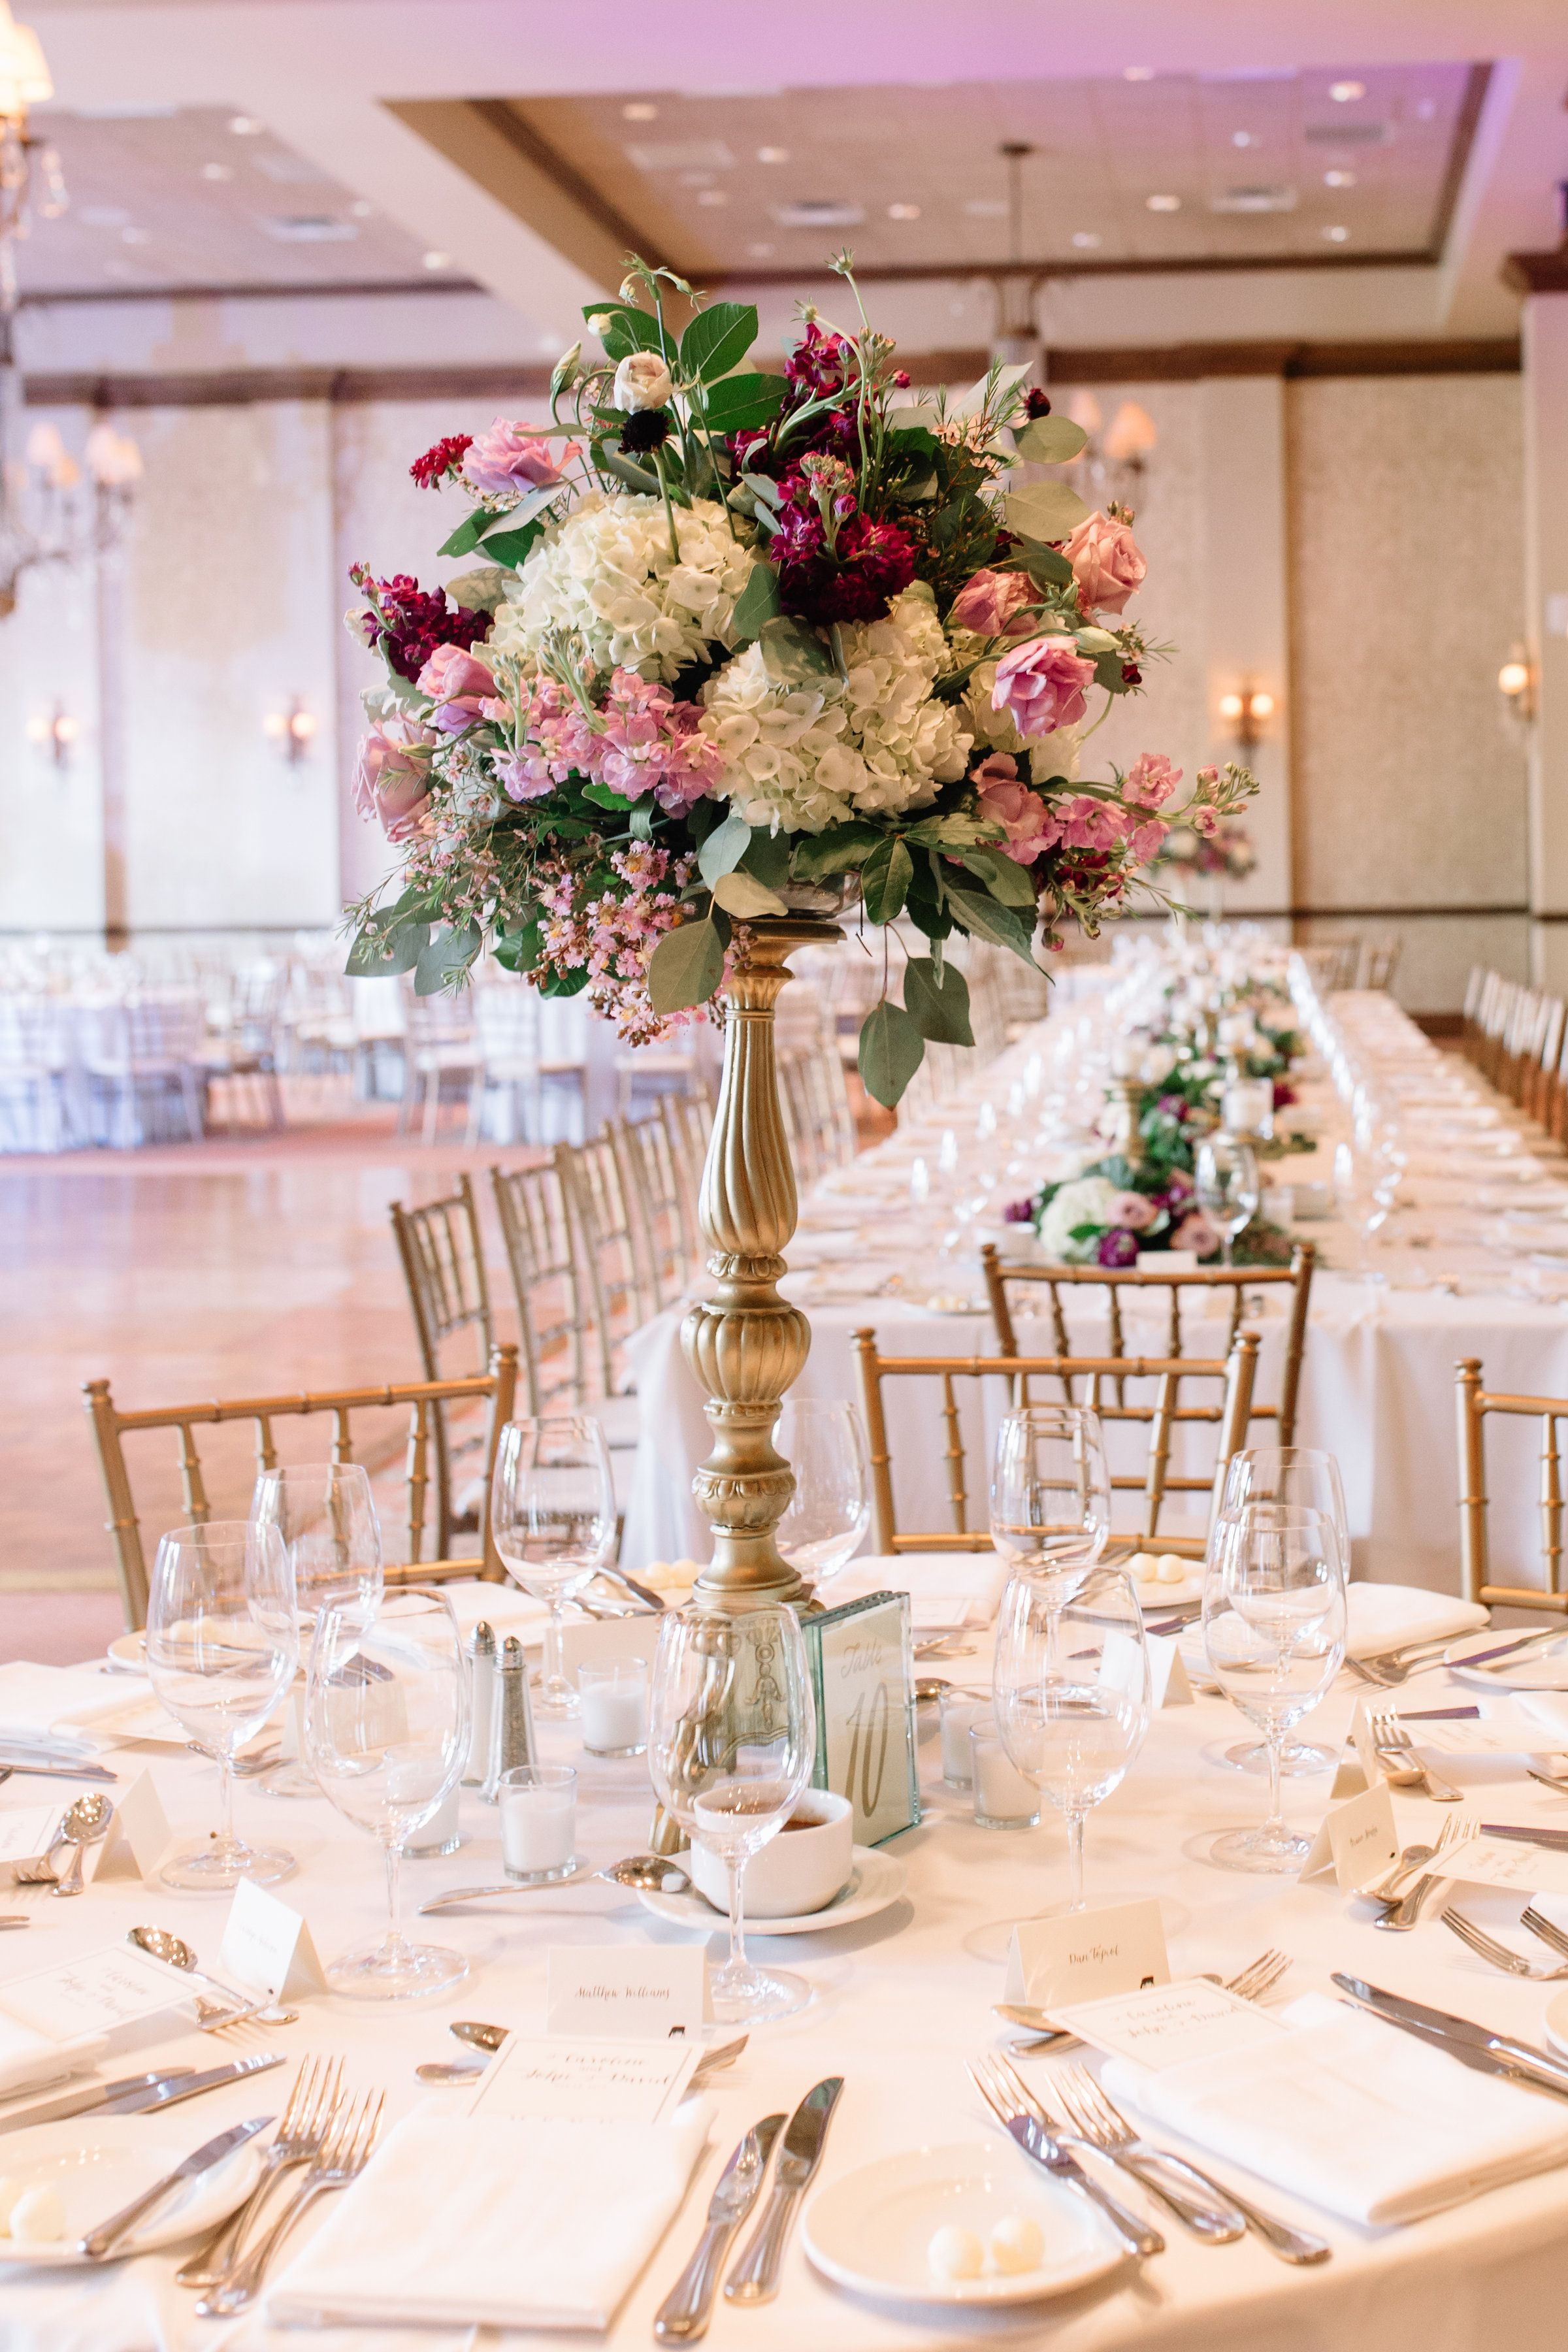 Wedding reception centerpiece of white hydrangea lavender roses purple stock lavender - Burgundy and white wedding decorations ...